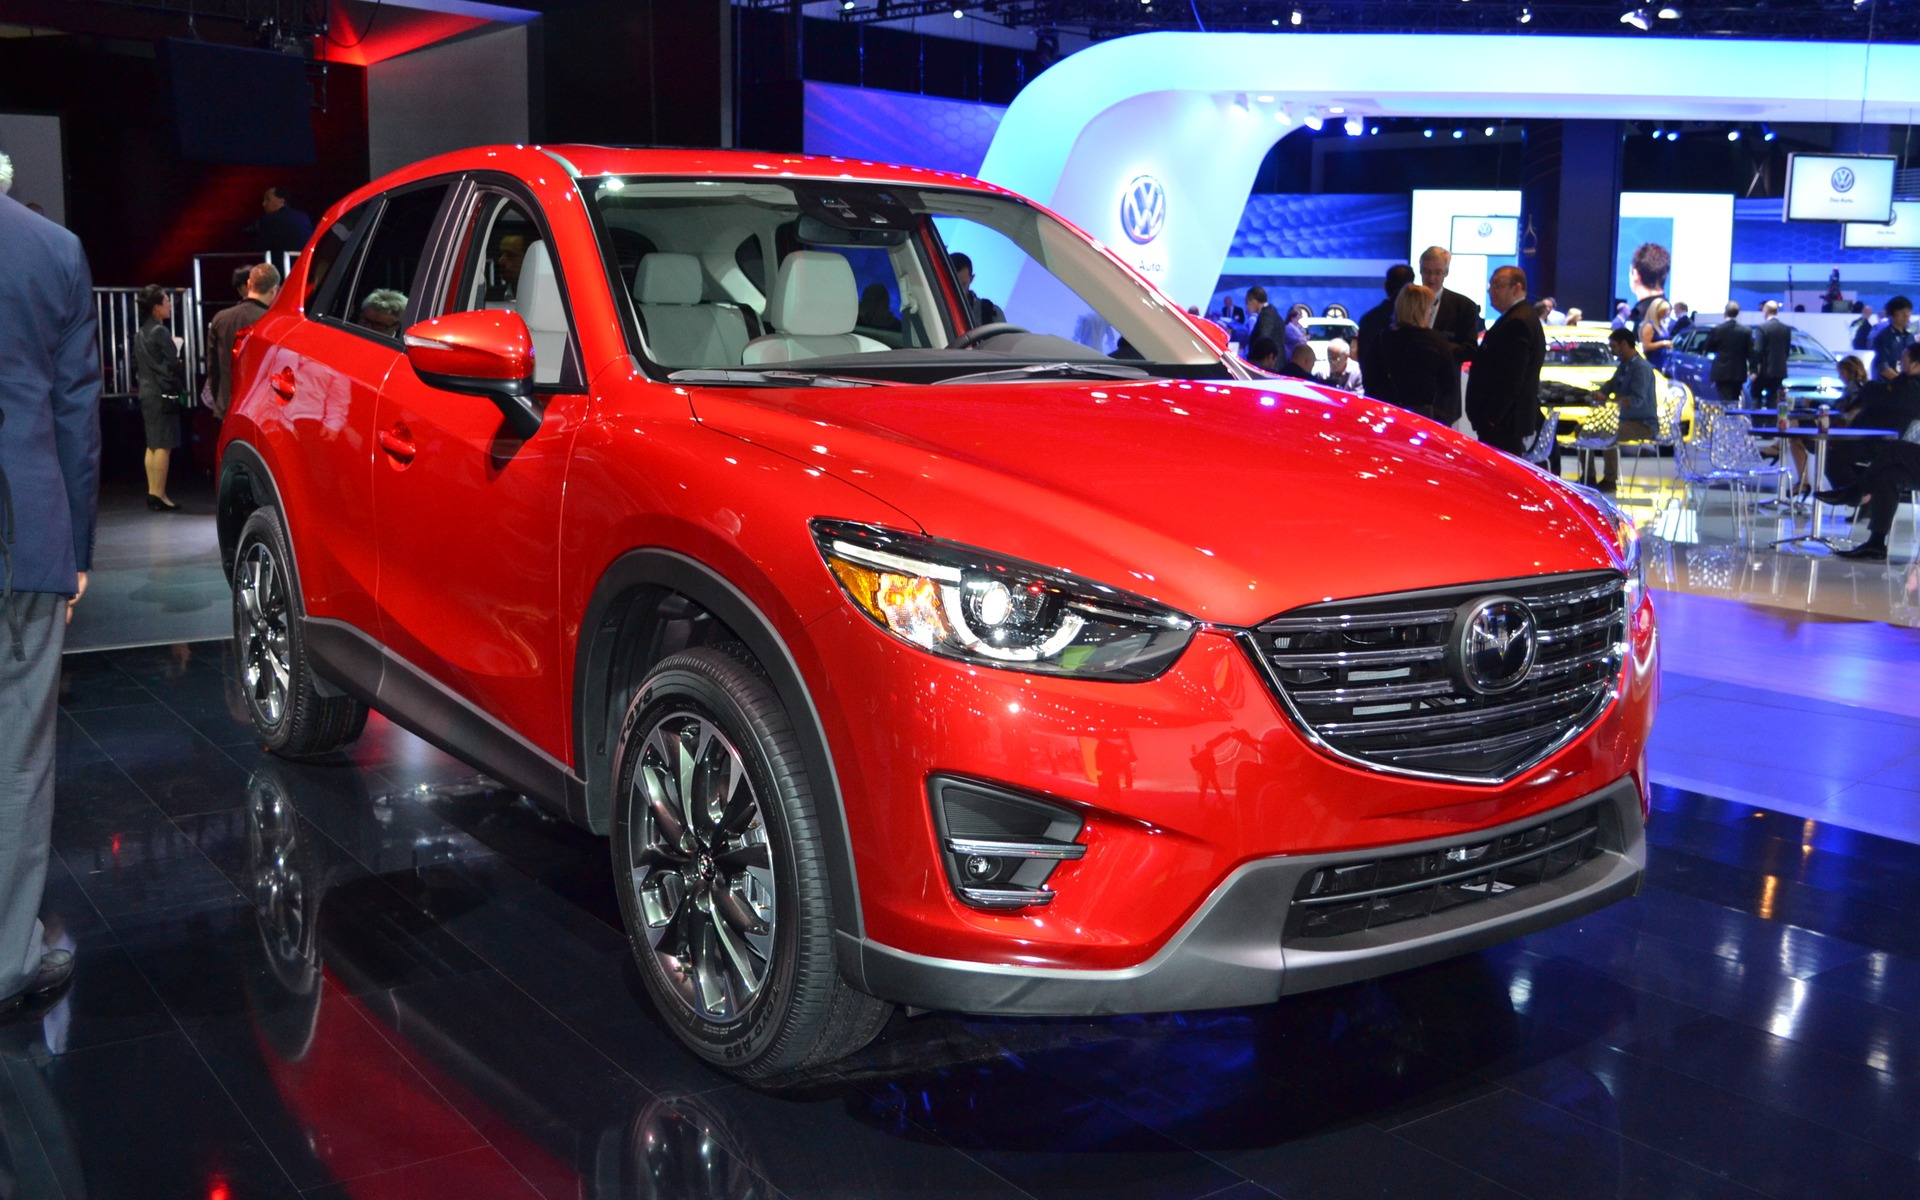 2016 Mazda CX5  Picture Gallery, photo 1/10  The Car Guide